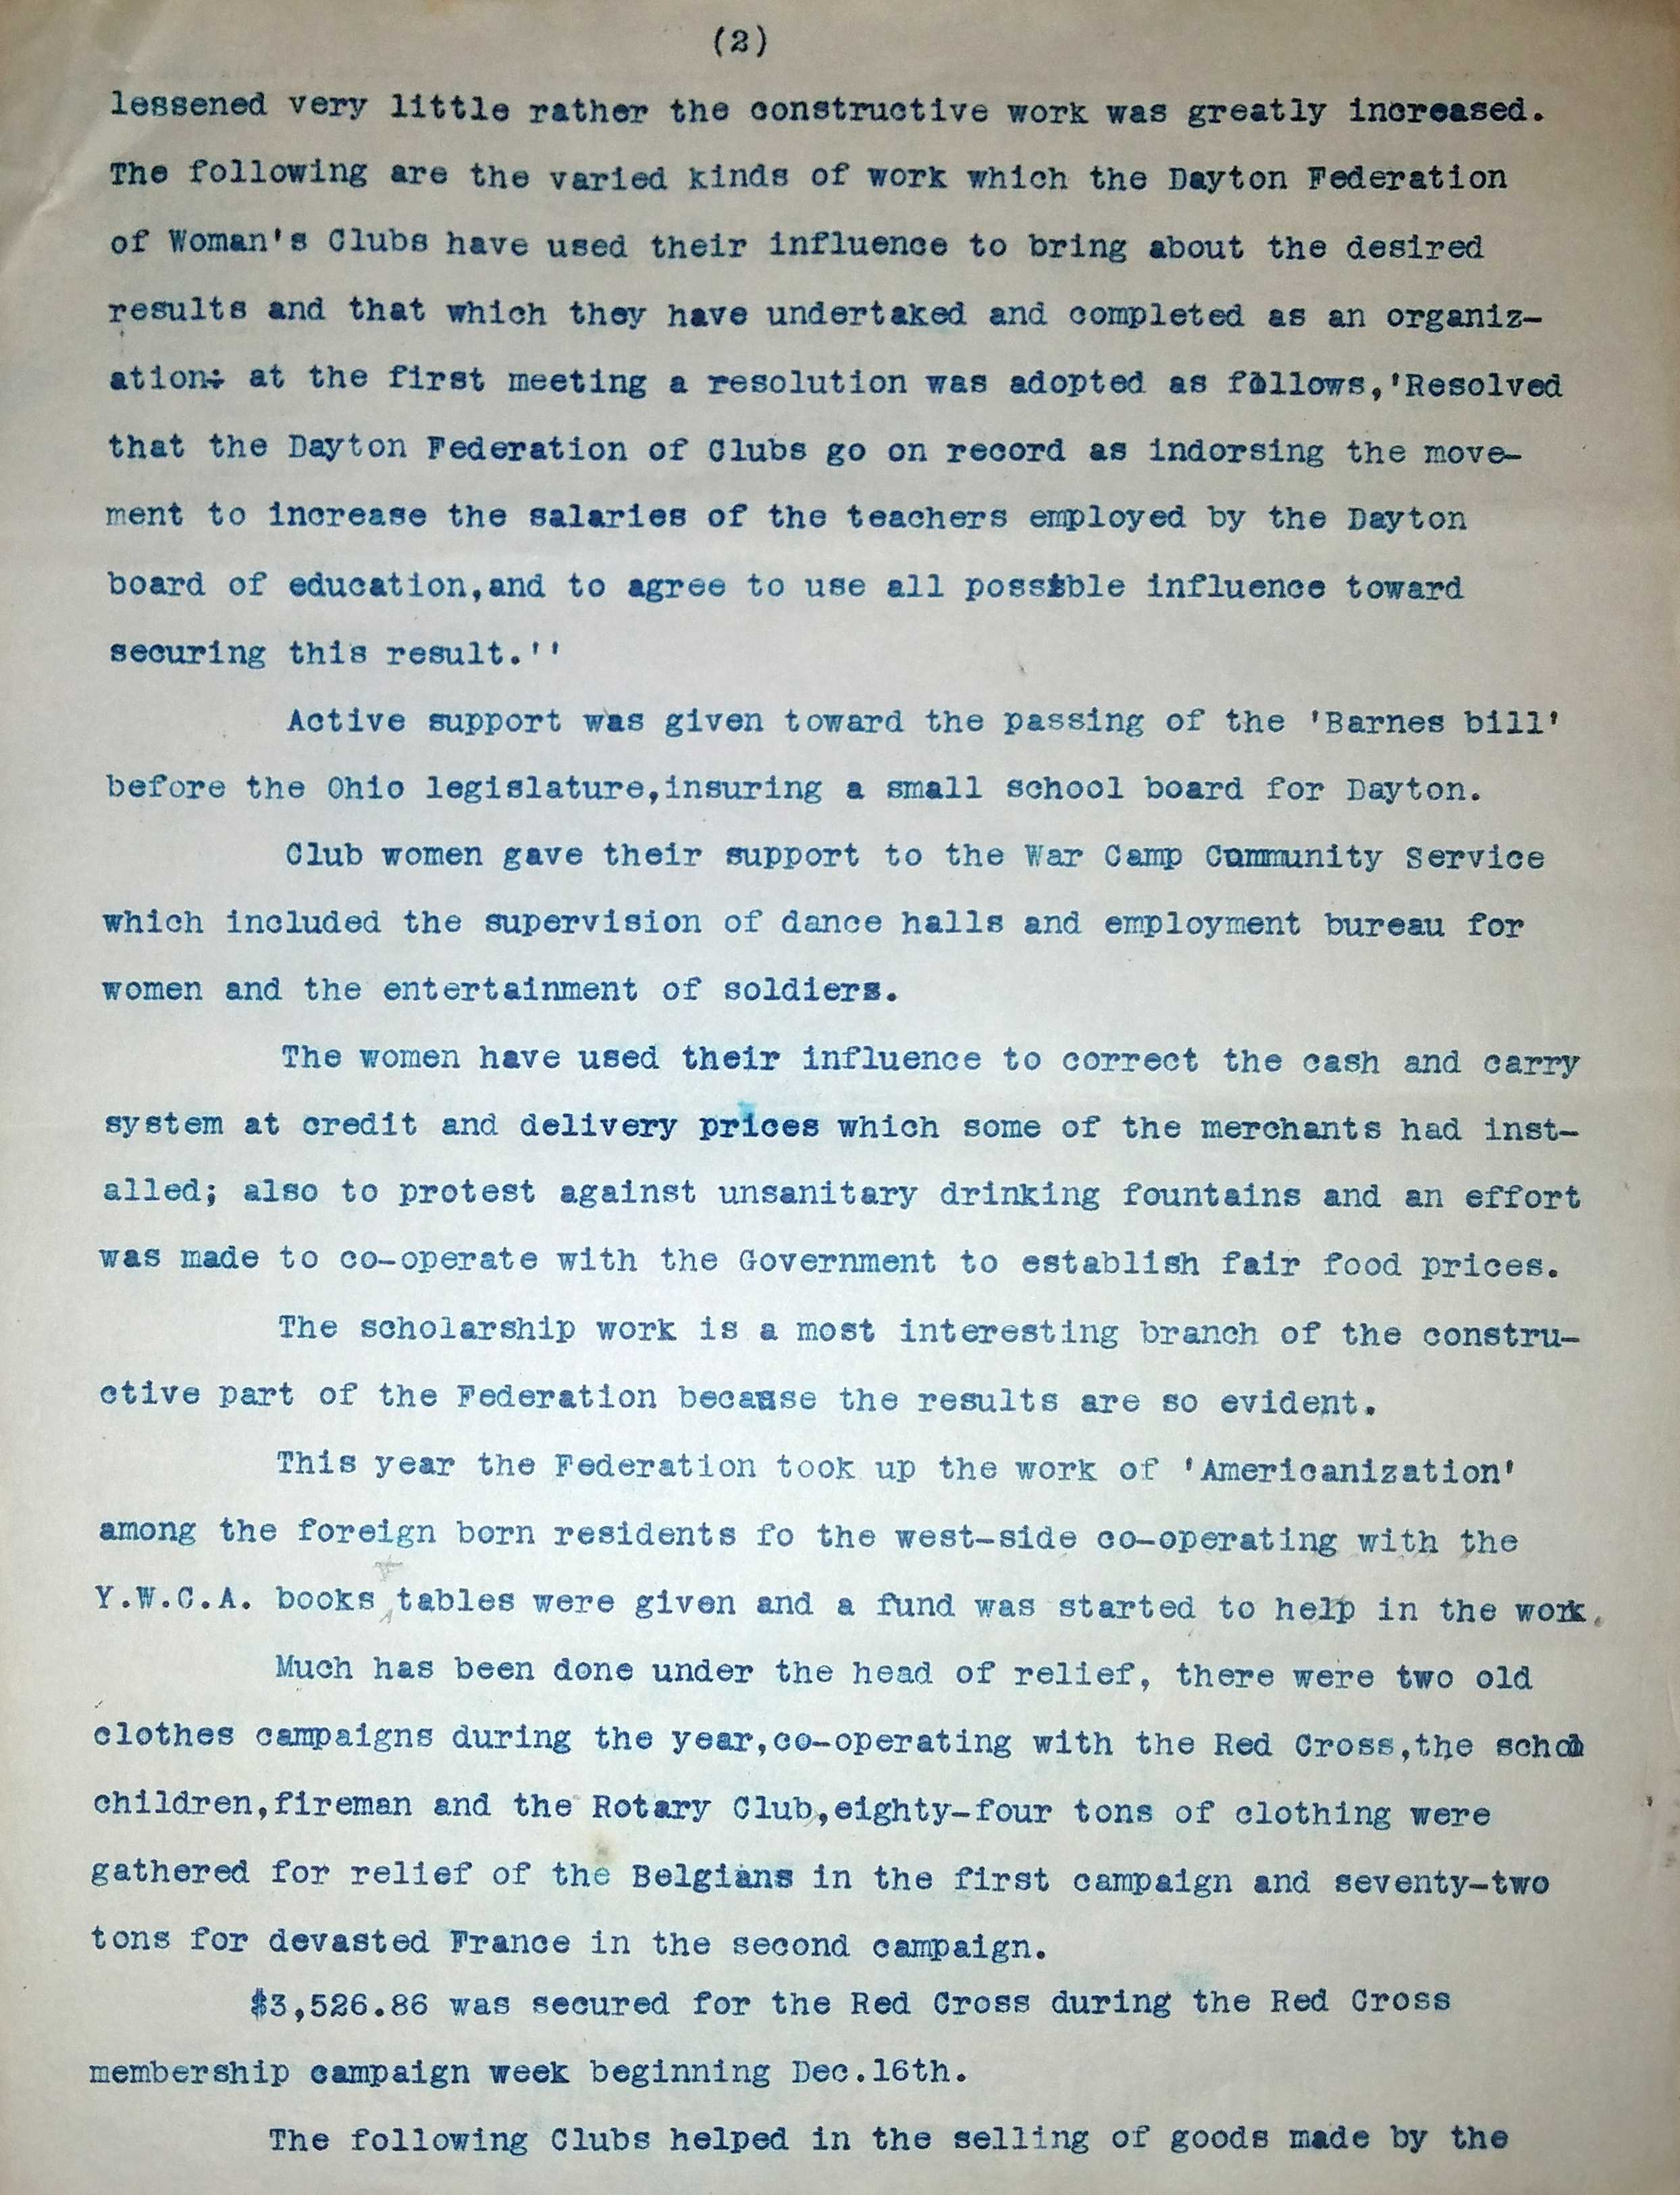 Page 2 of the Dayton Federation of Women's Clubs Annual Report, 1918-1919. Image courtesy of the Wright State University Special Collections and Archives.